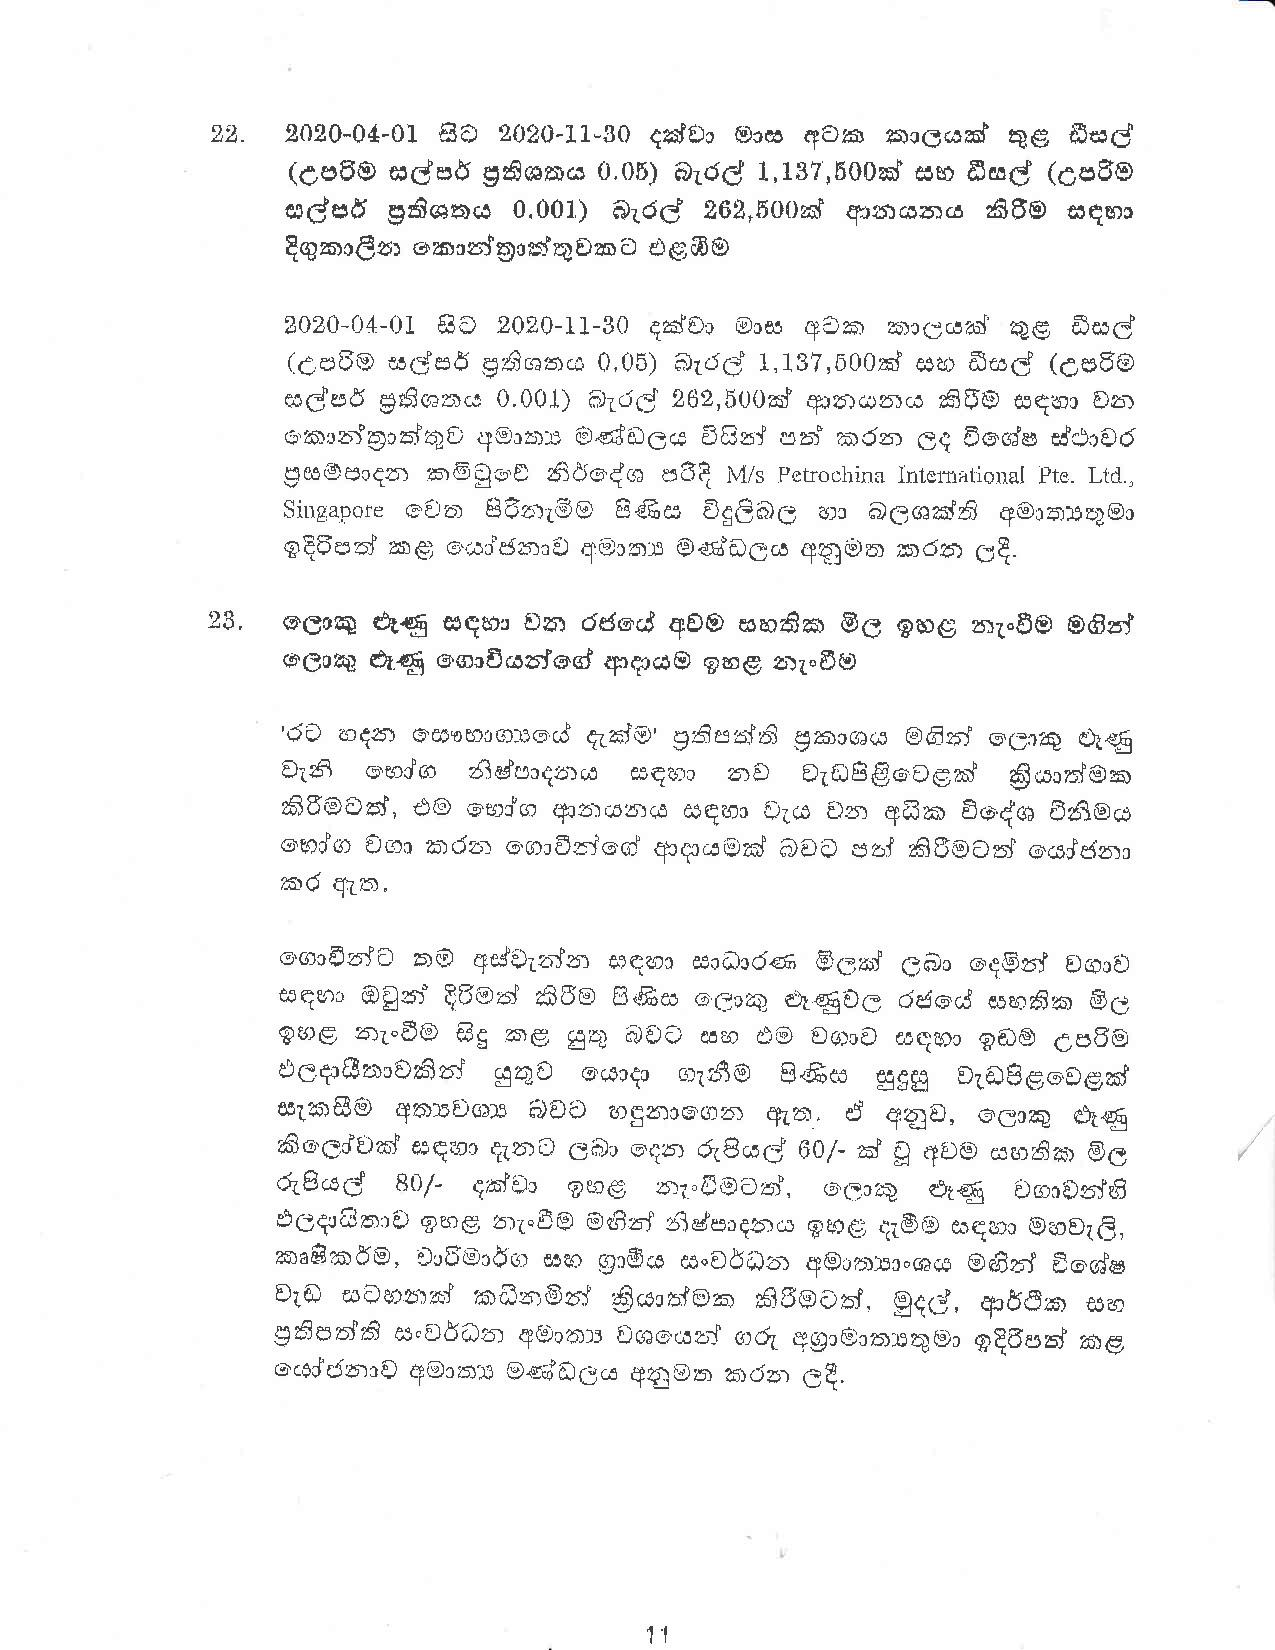 Cabinet Decision on 27.02.2020 page 011